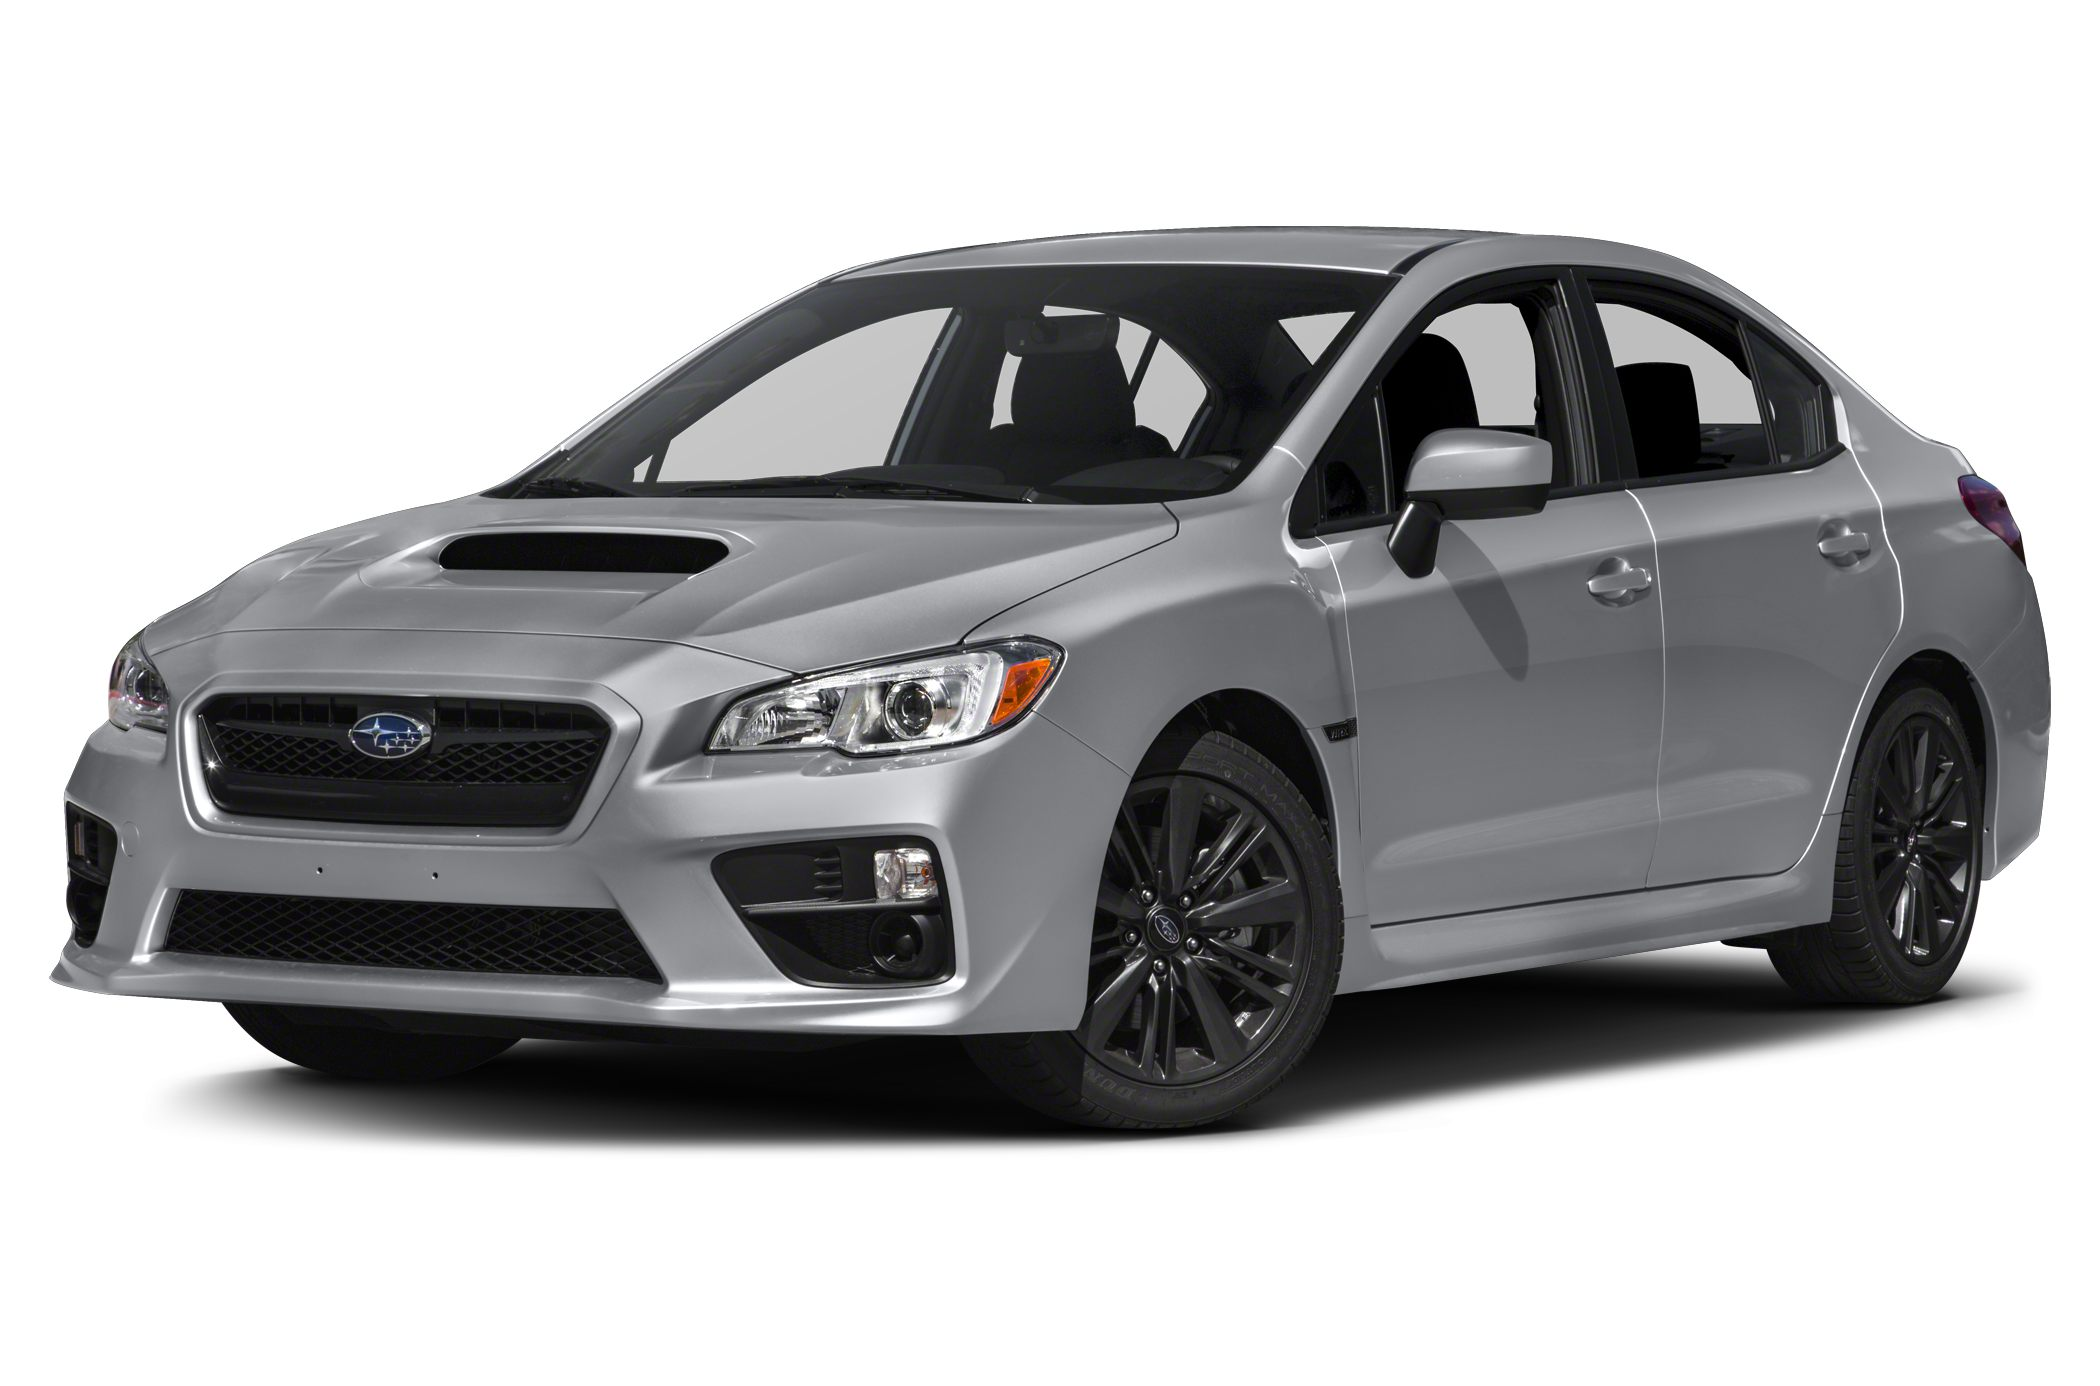 Genesis Car Wallpaper Subaru Recalls Wrx And Forester 2 0xt For Turbo Intake